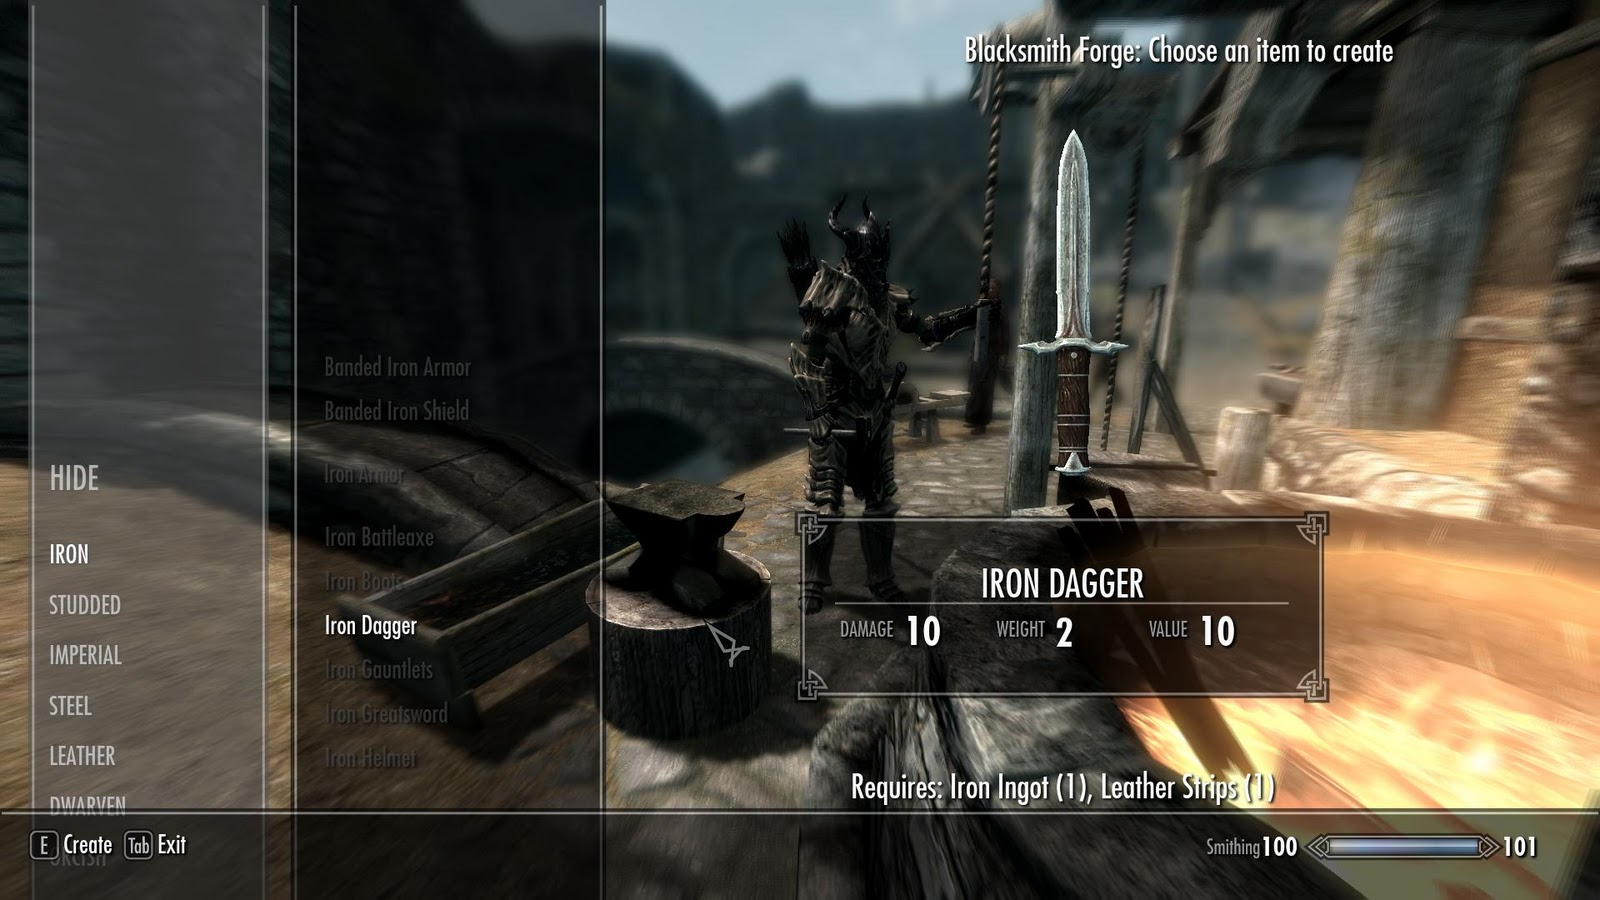 Skyrim Armor And Weapon Crafting Guide - Gamingreality-5049